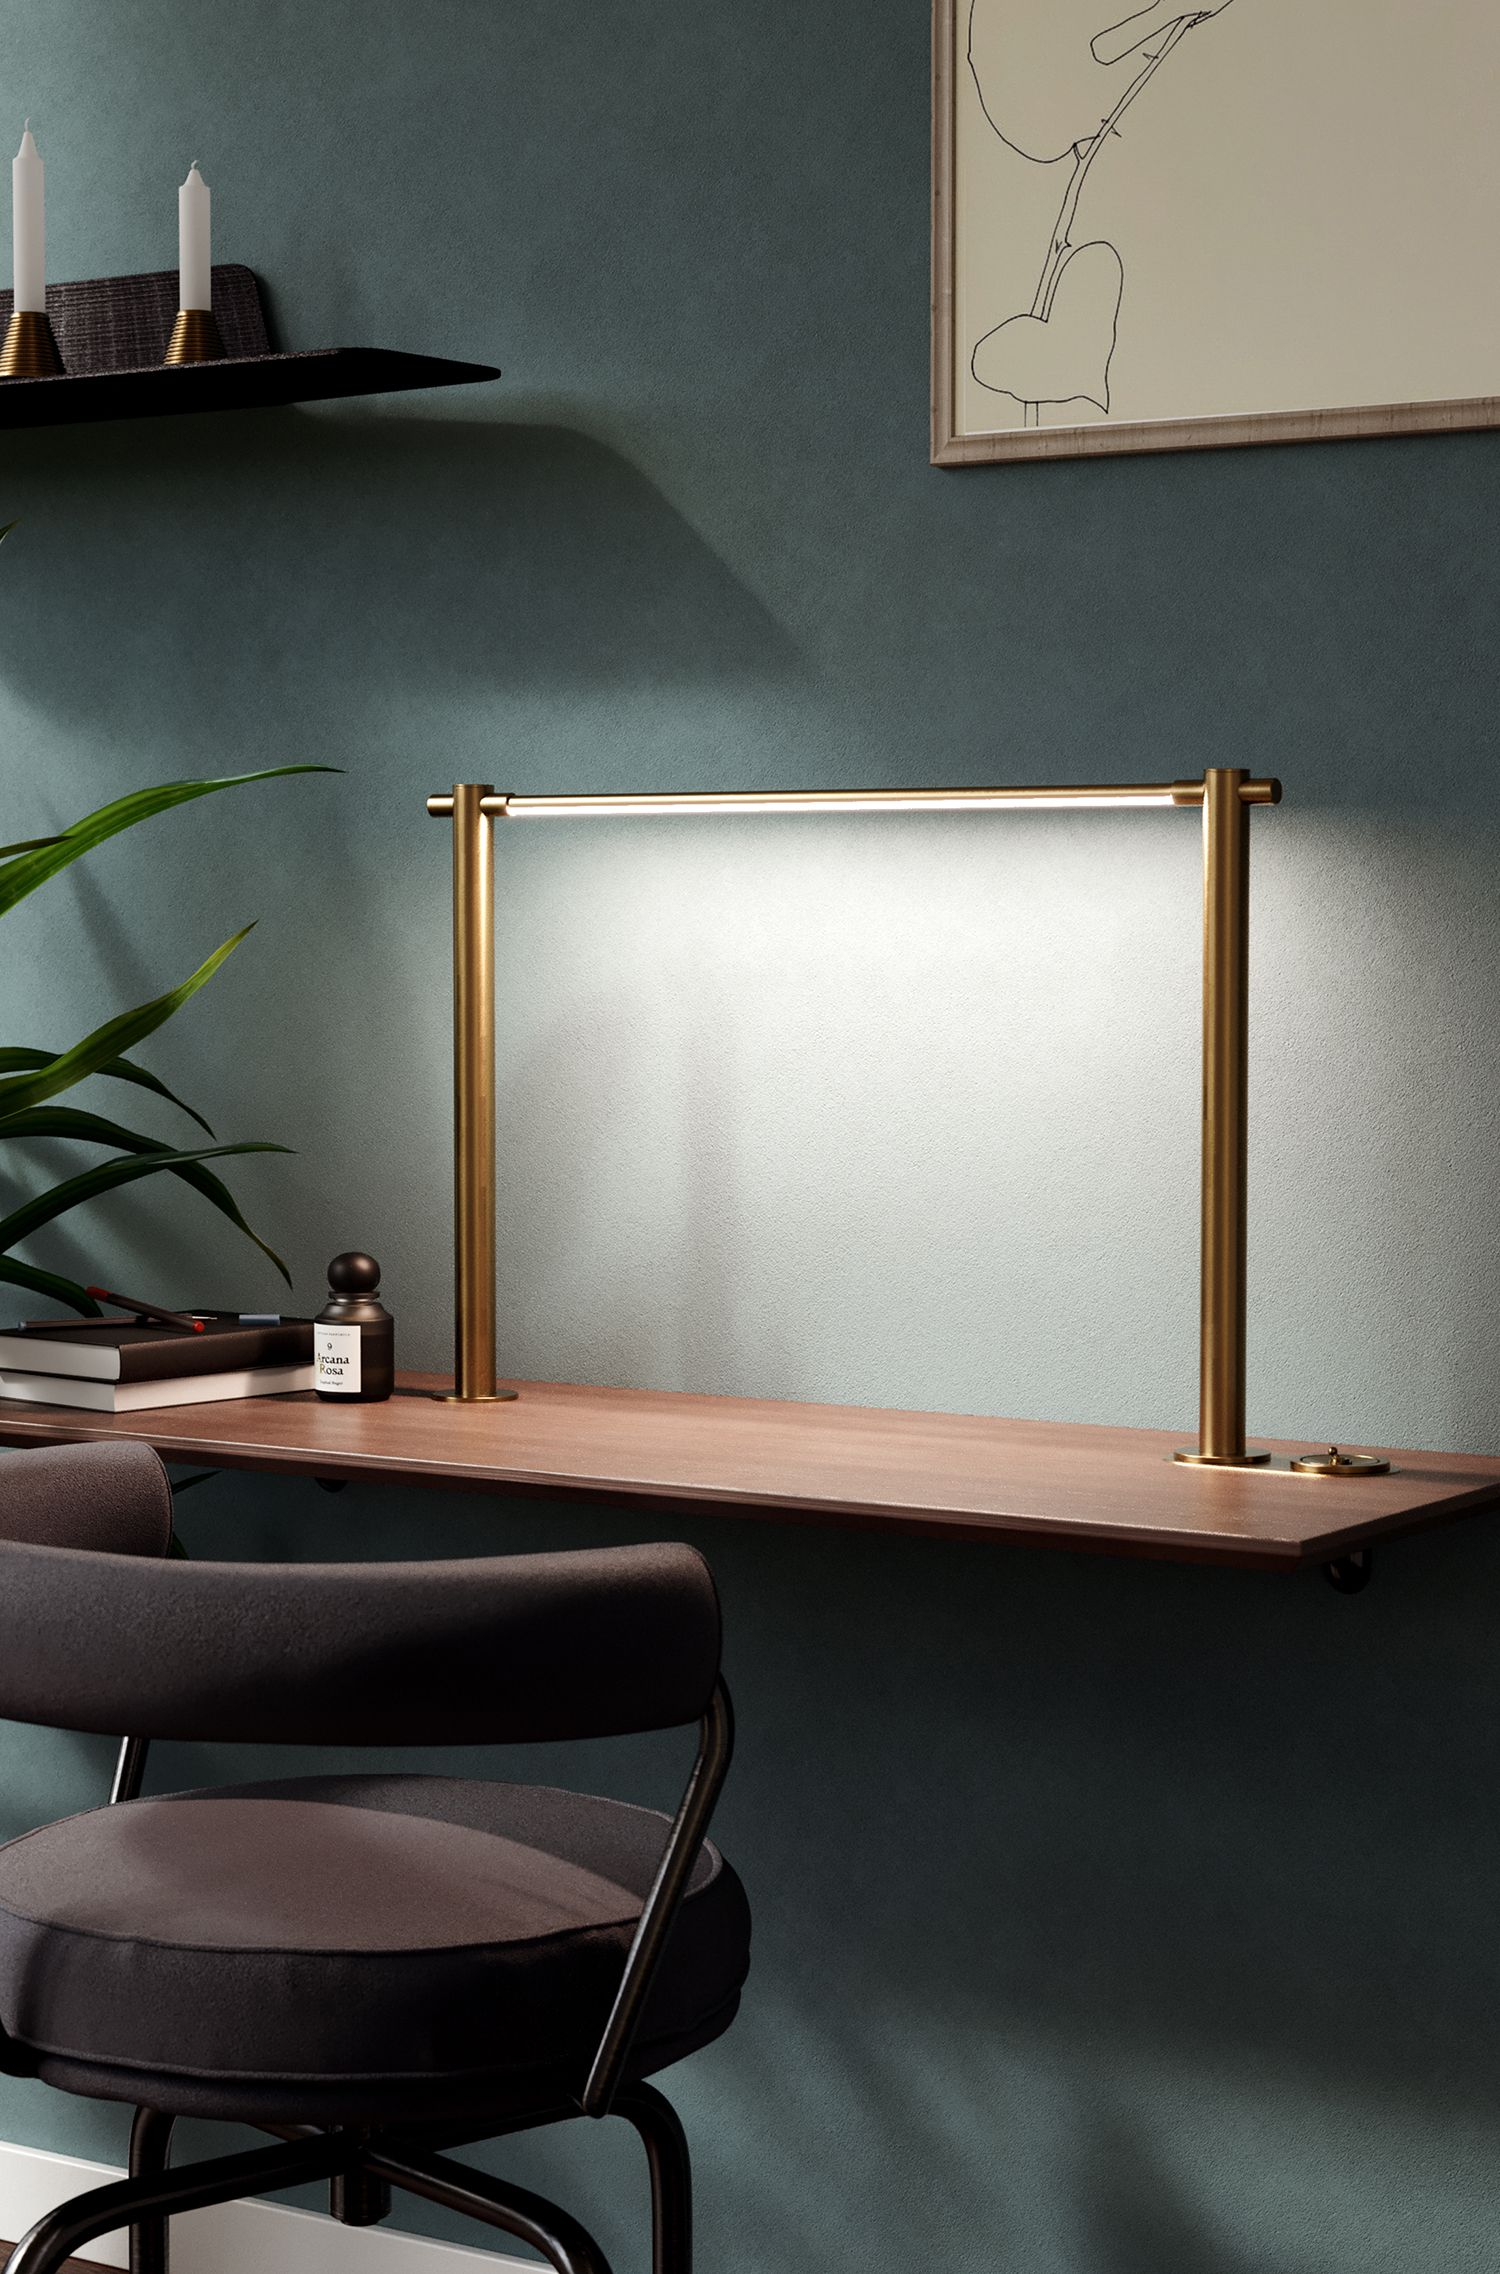 Desk Lighting Options That Help Reduce Footprint Clutter